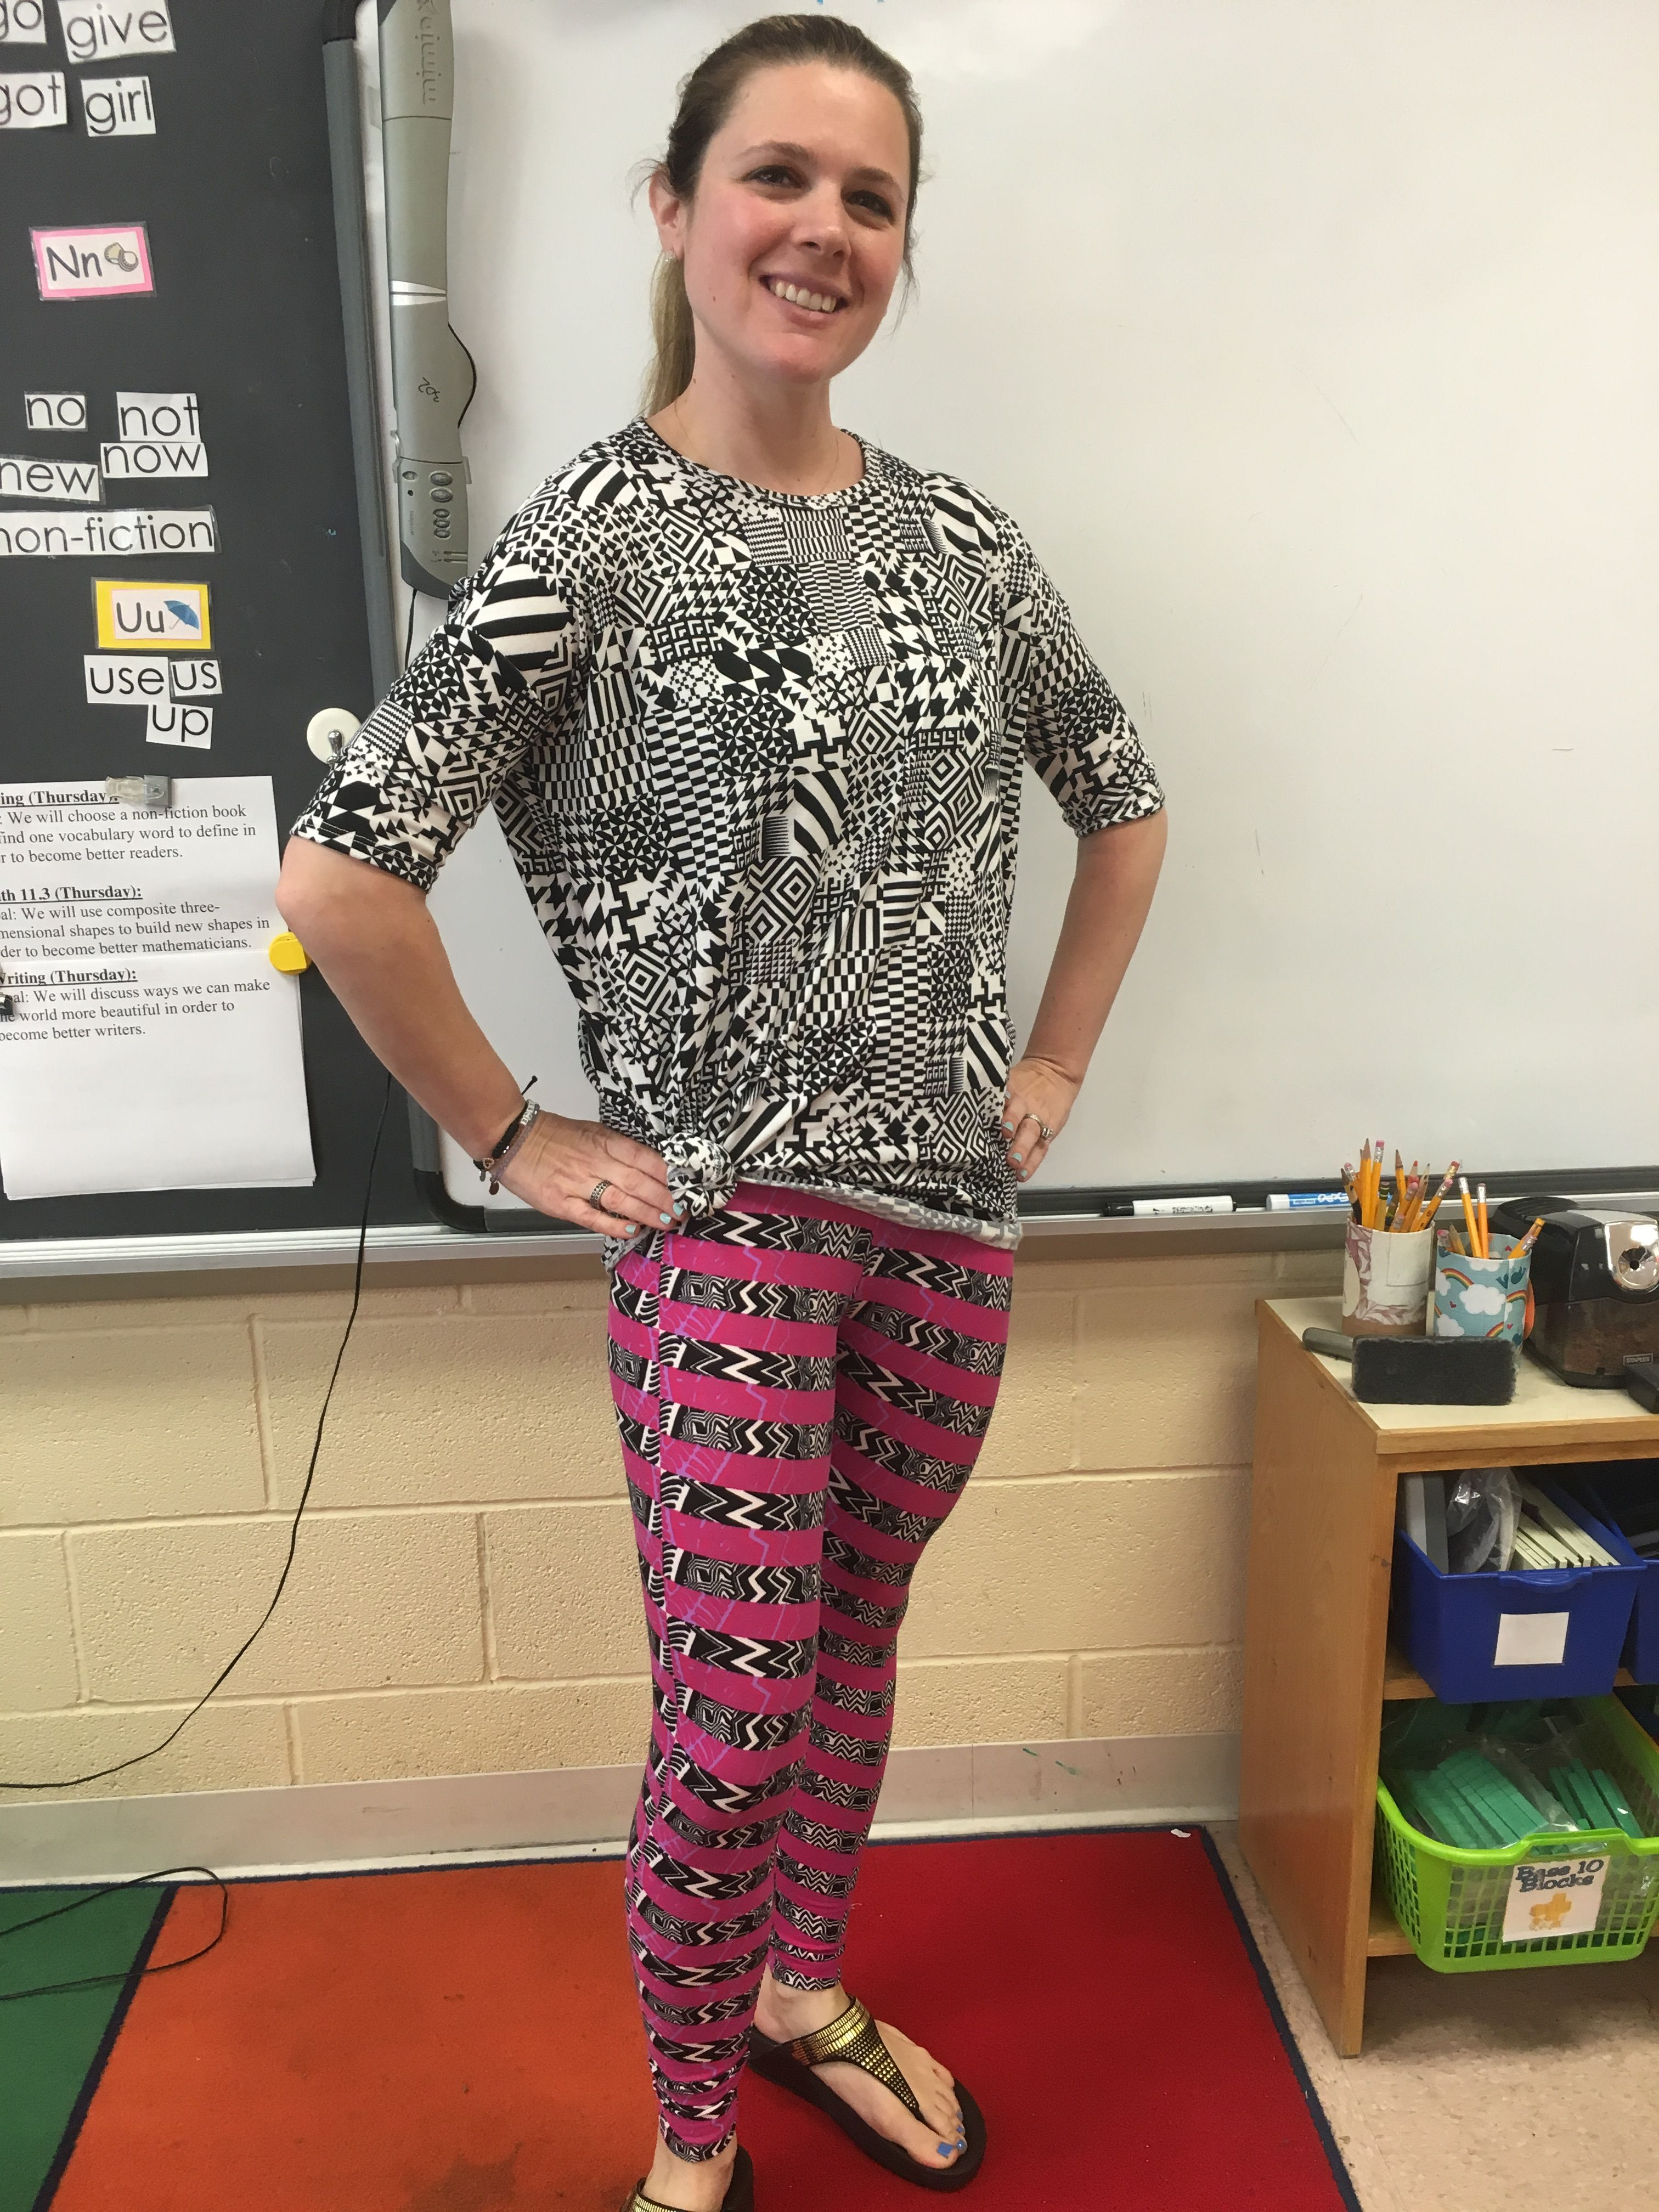 7a4fa7f1319320 Pattern mixing is one of my passions with LuLaRoe! I've got my Irma tunic  tied on the side with my buttery soft leggings! As a teacher, pattern mixing  is ...